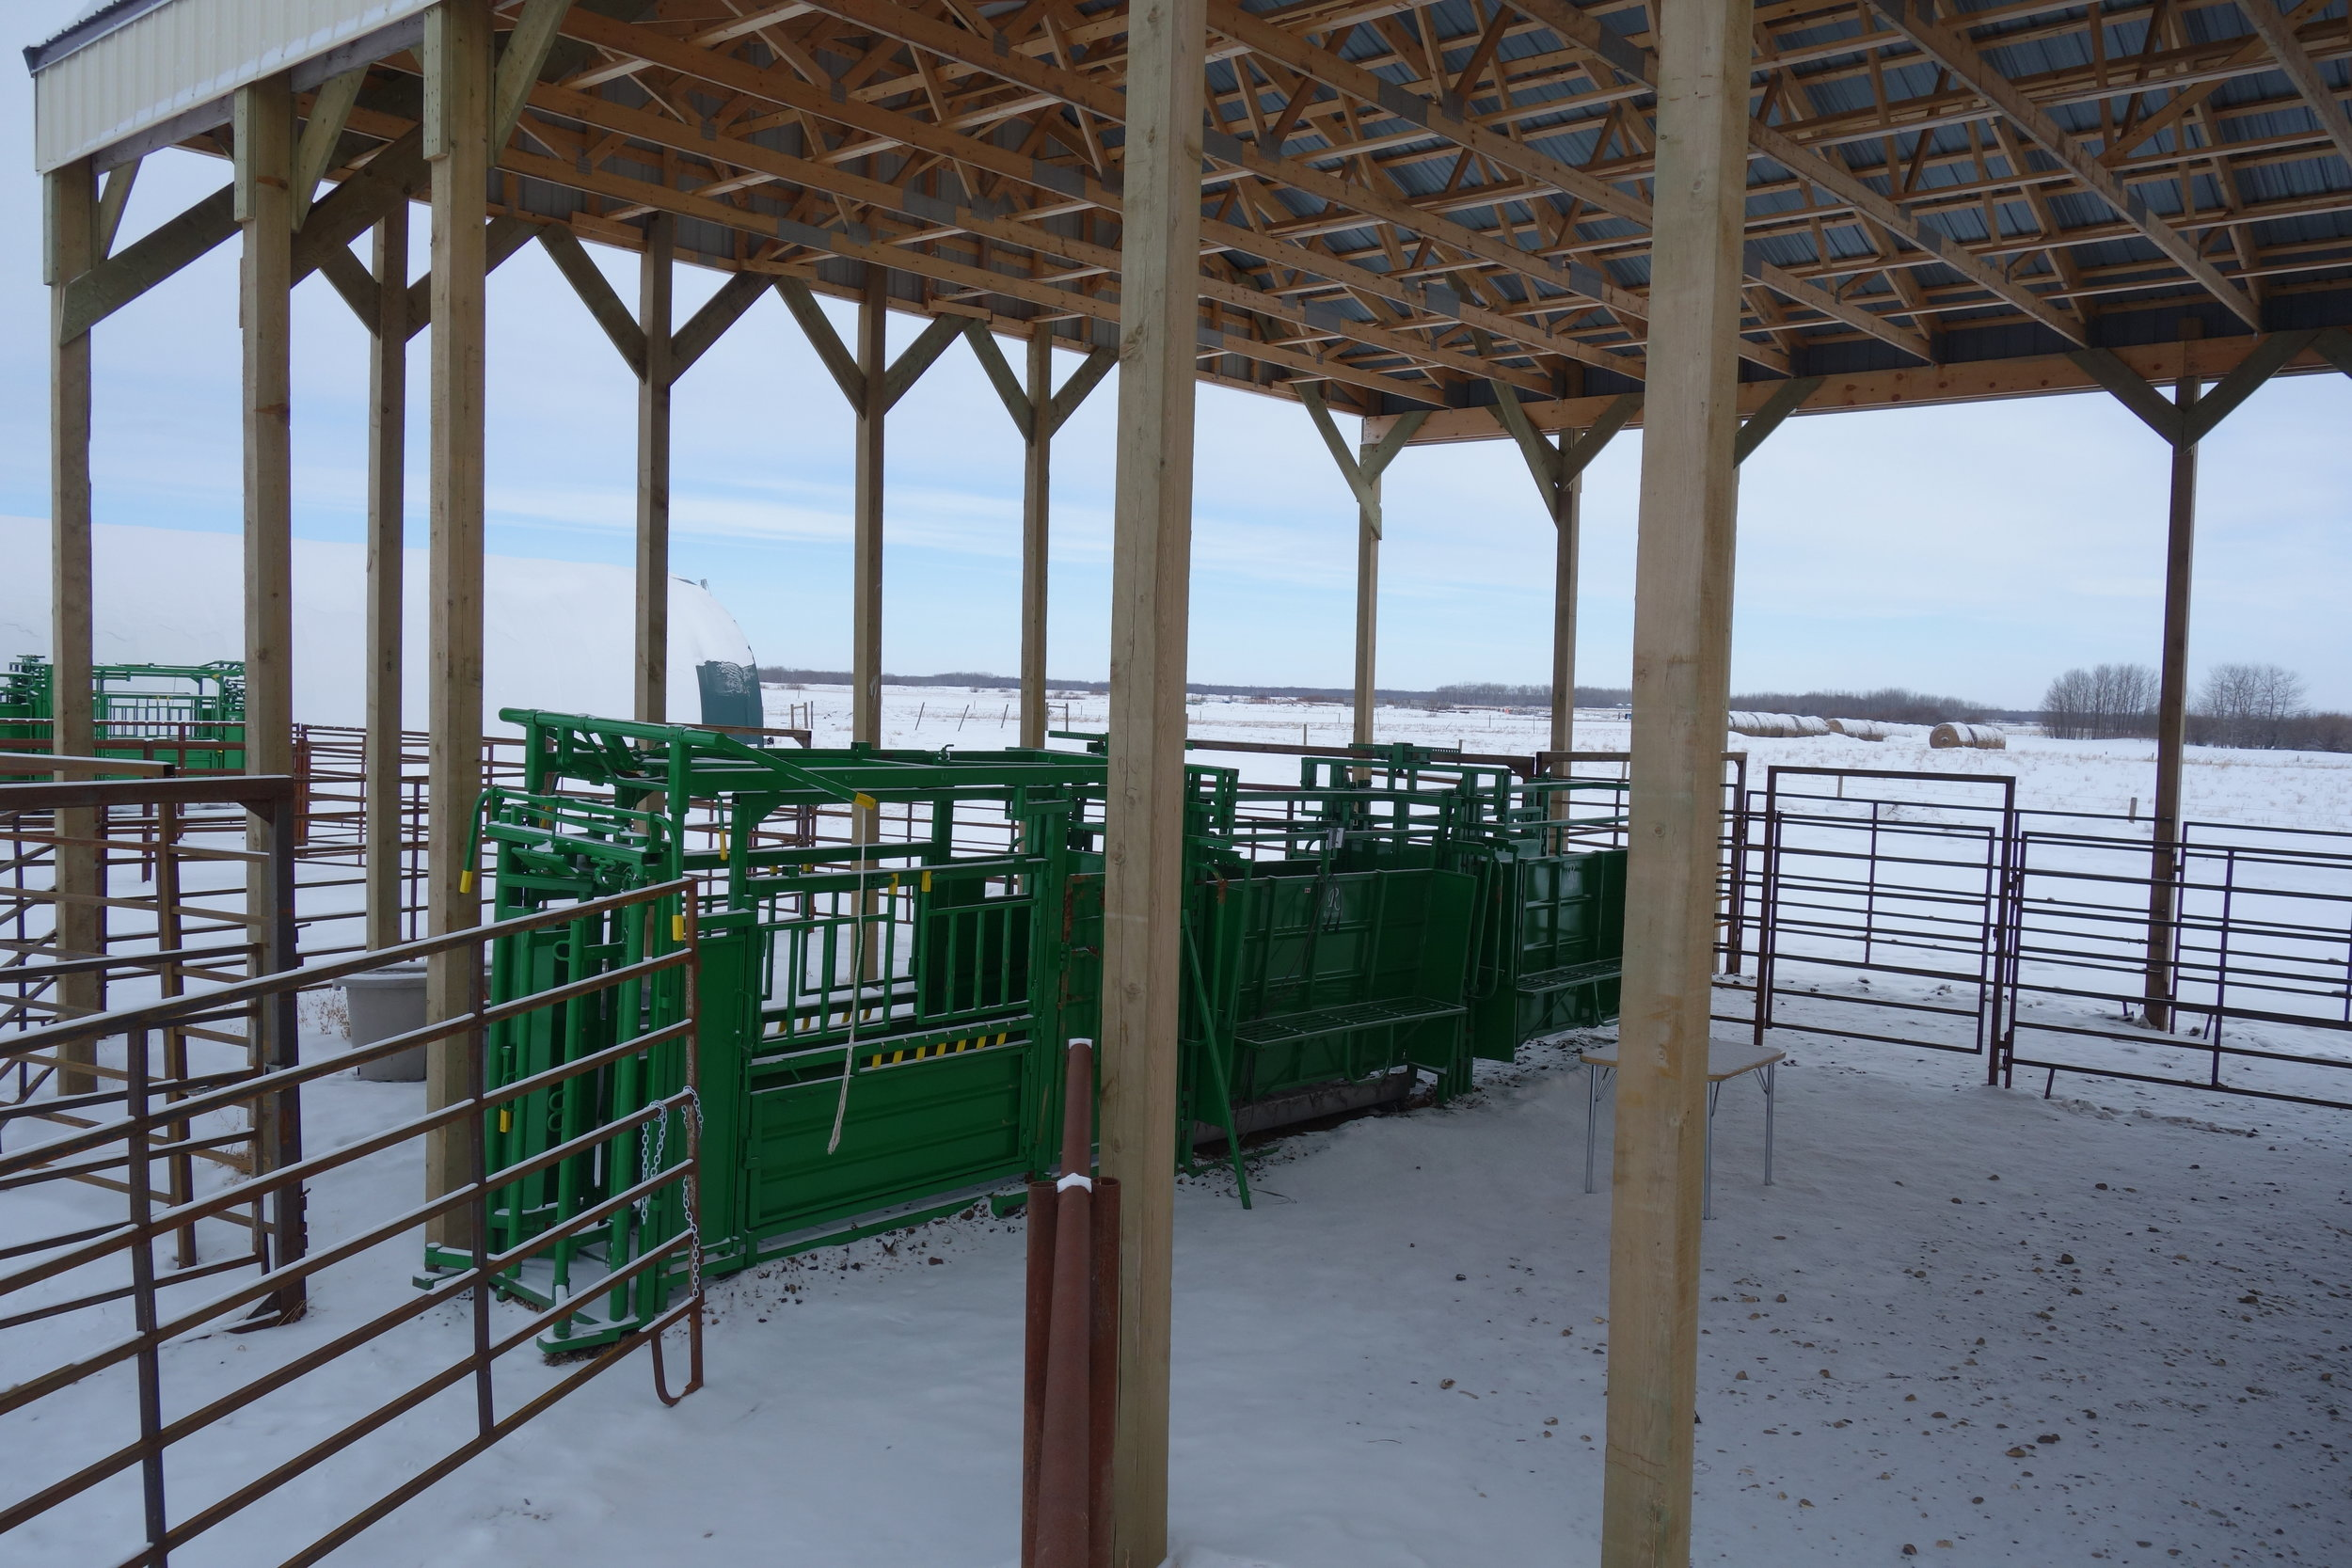 Brookdale Real Chute System and Corral